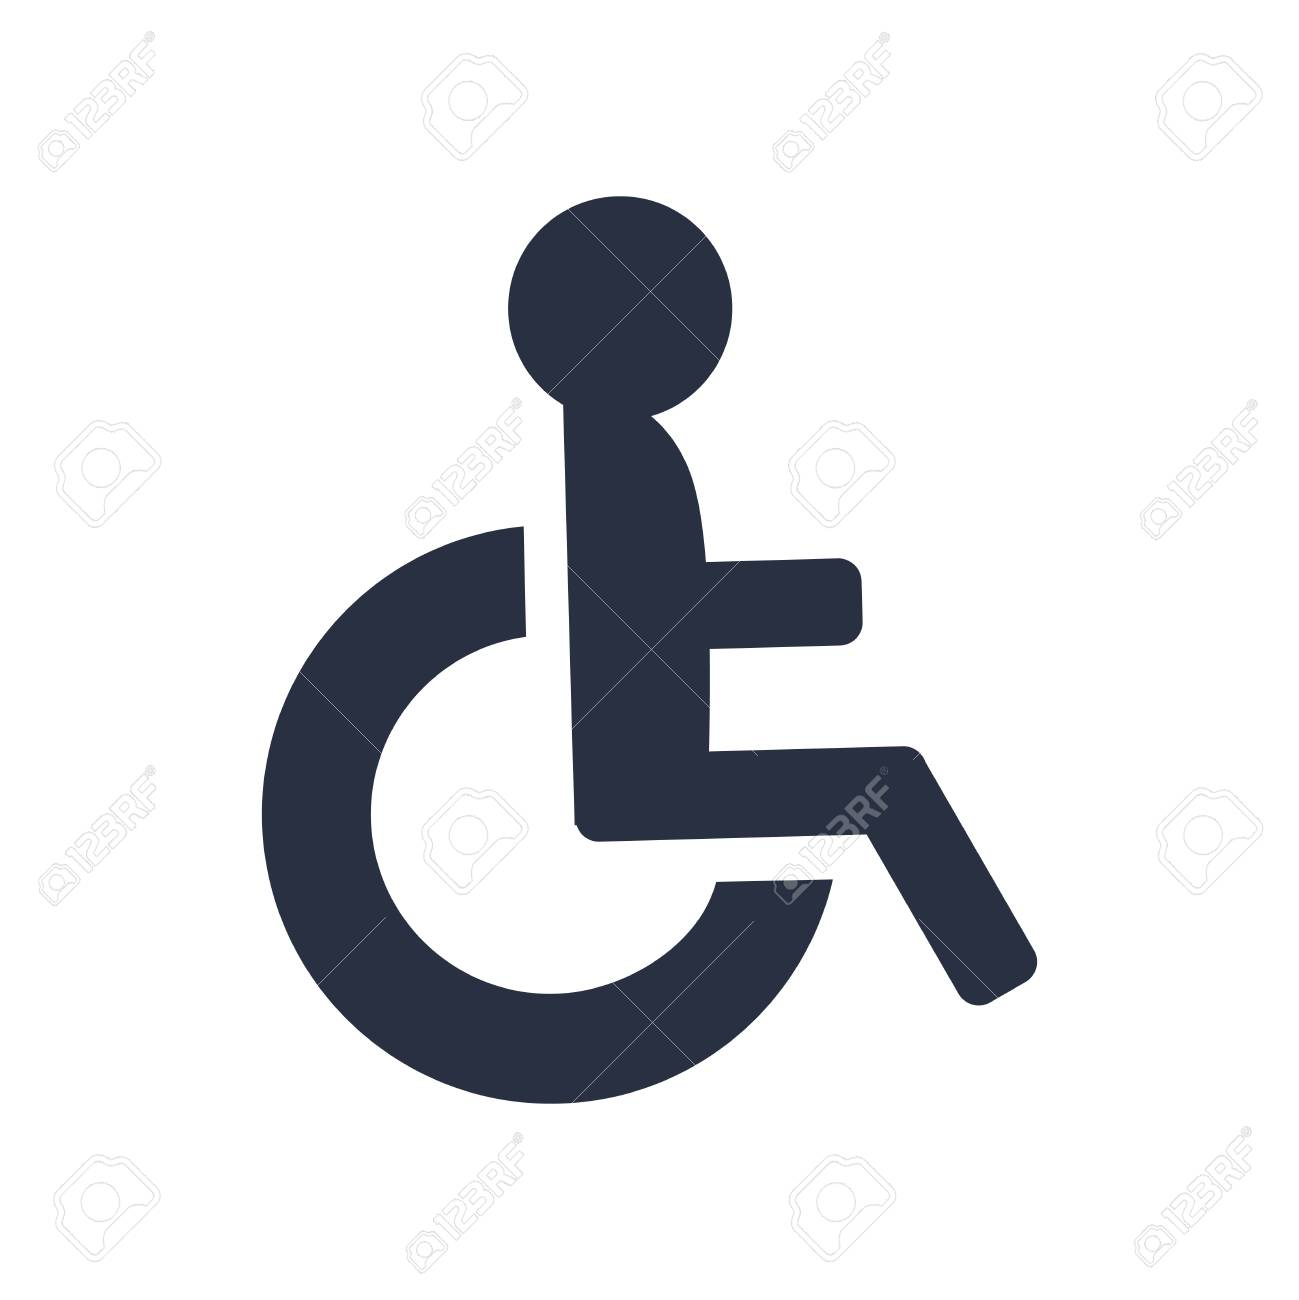 Disabled icon vector, wheel chair symbol. Disabled Icon vector. Simple flat symbol. Perfect Black pictogram illustration on white background. Accessibility icon, people transportation, wheelchair. - 125733800